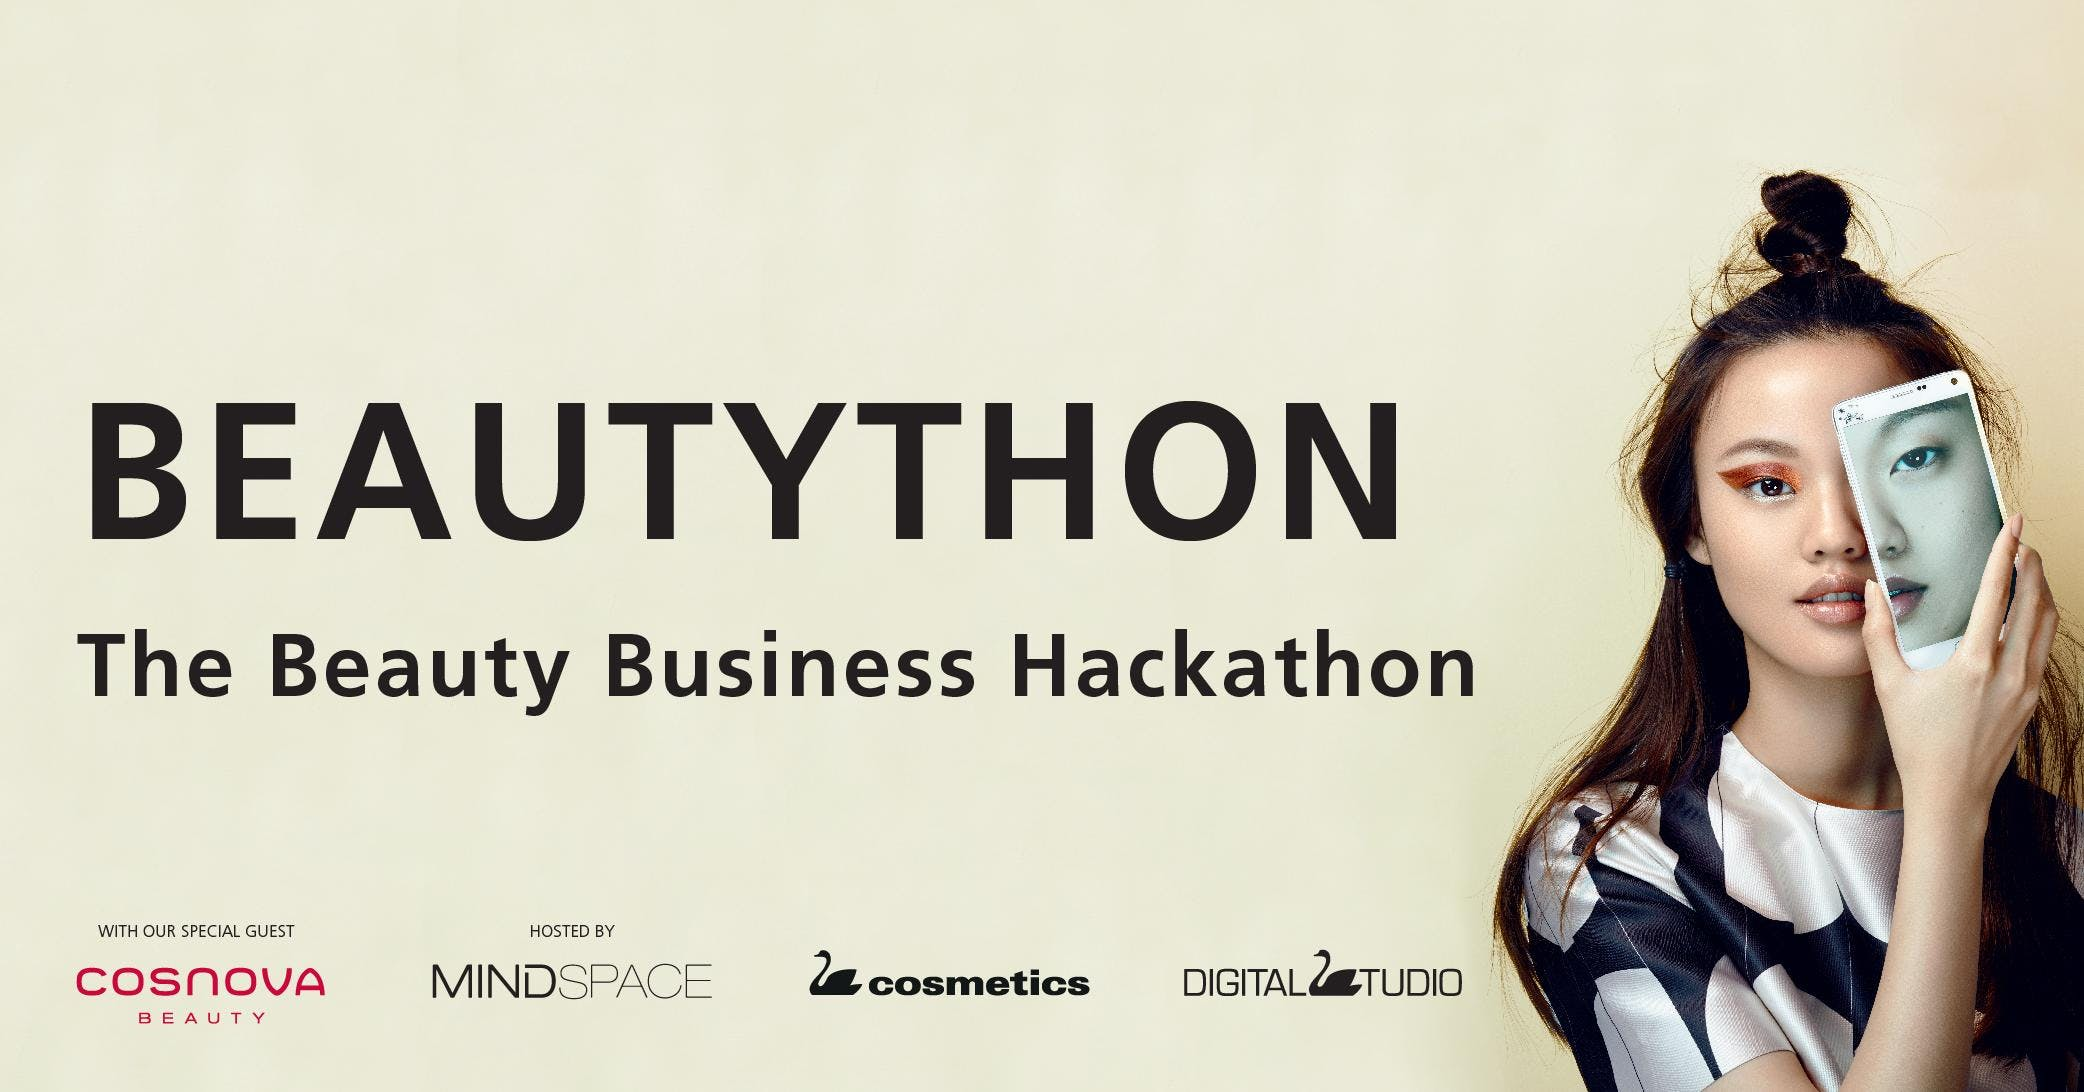 BeautyThon: The Beauty Business Hackathon